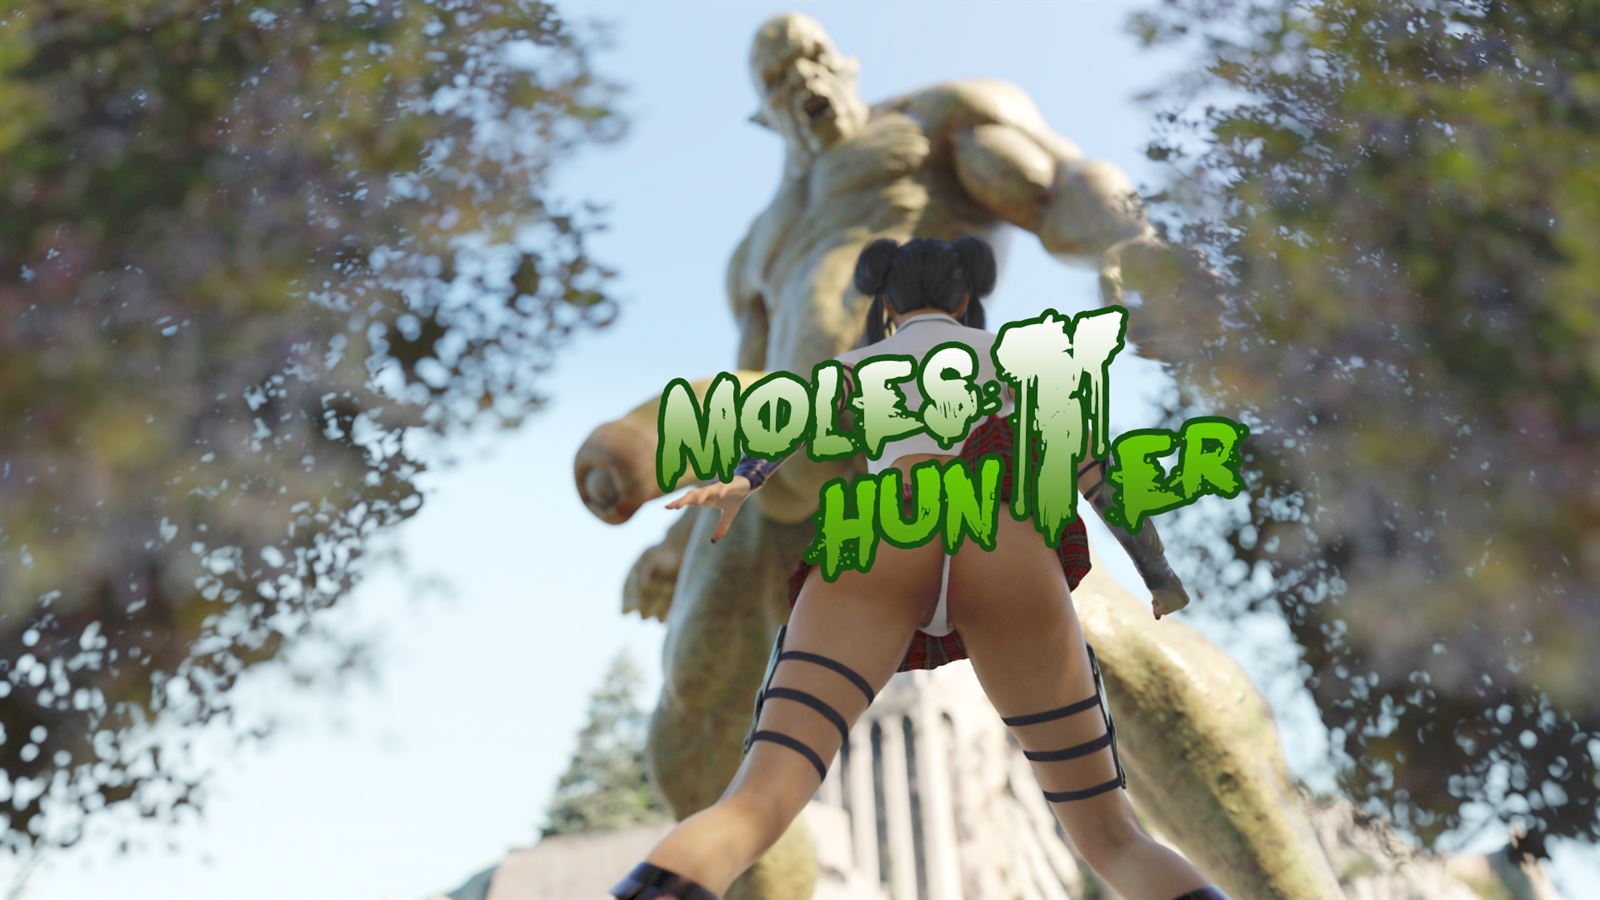 Molest Hunter Adult Game Cover